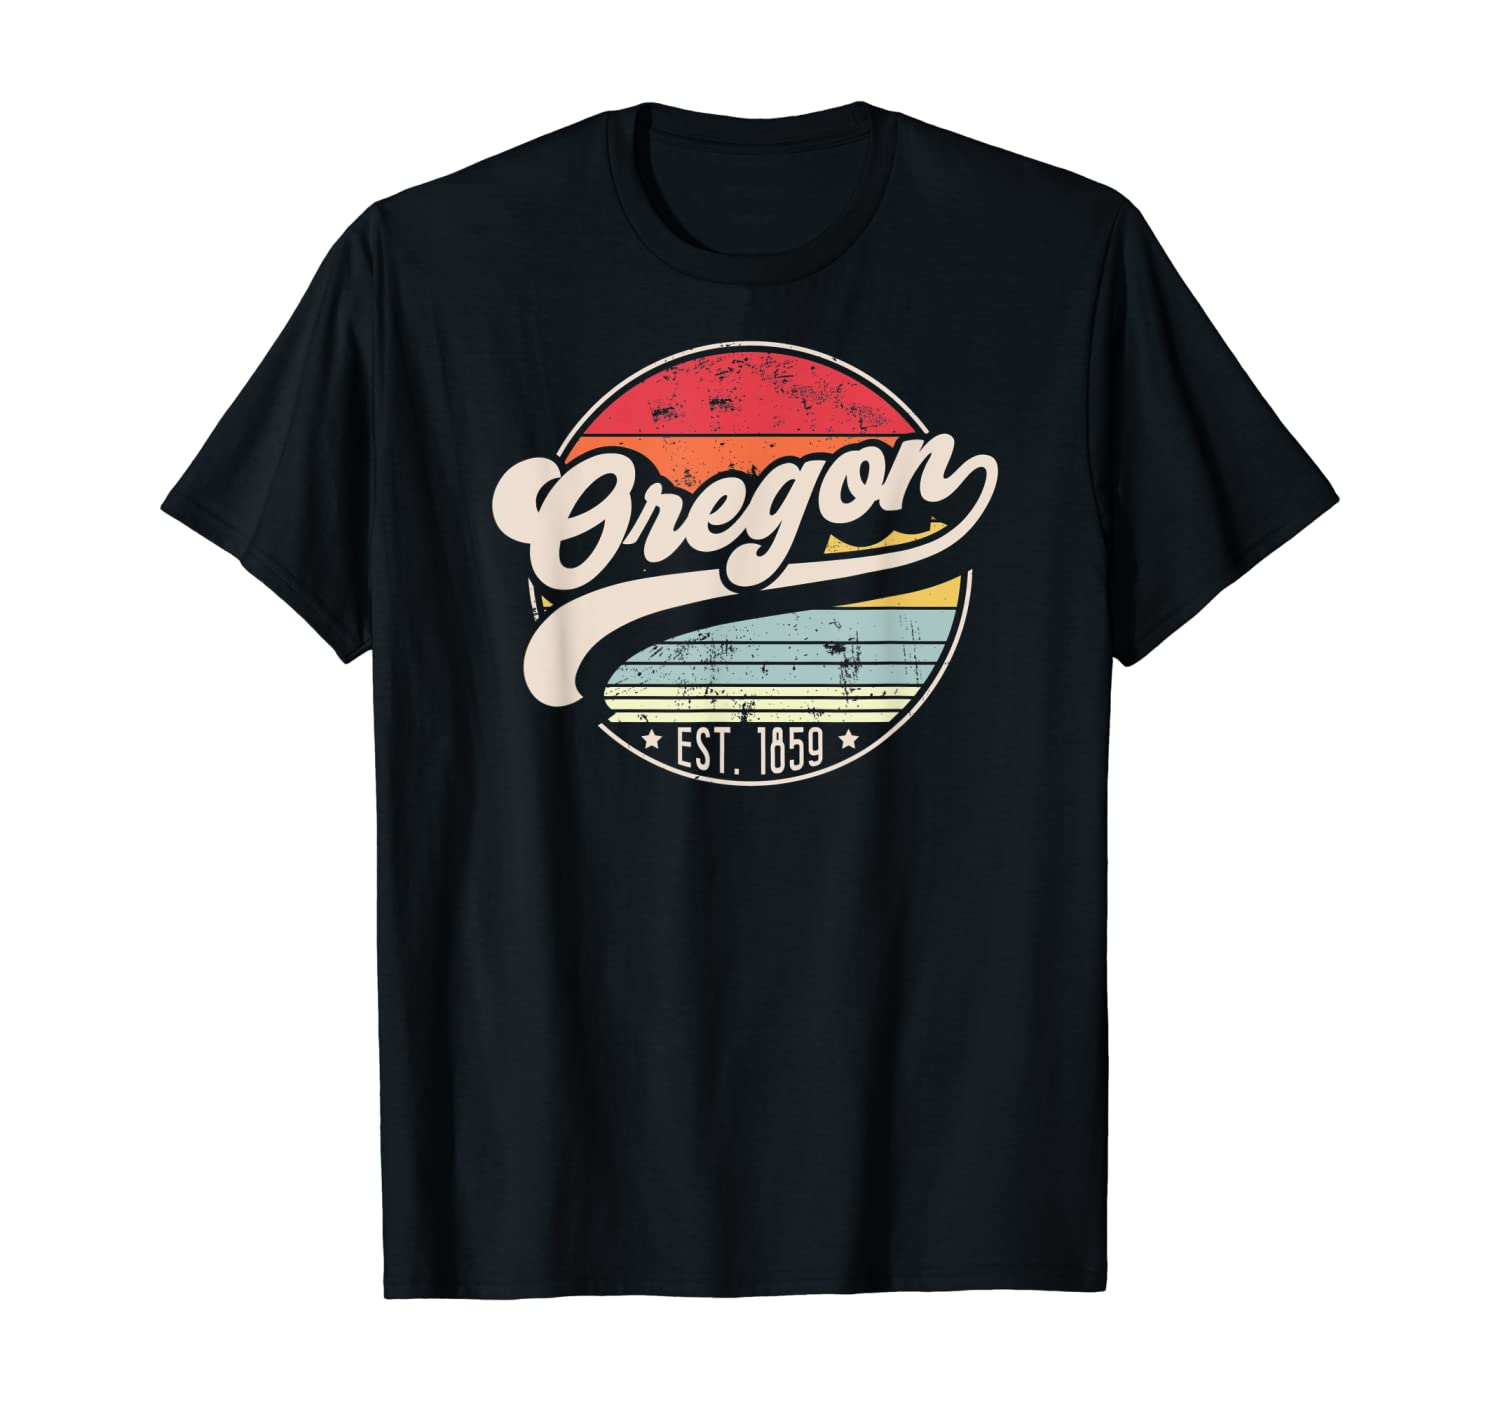 Retro Oregon Home State OR Cool 70s Style Sunset Gift T-Shirt